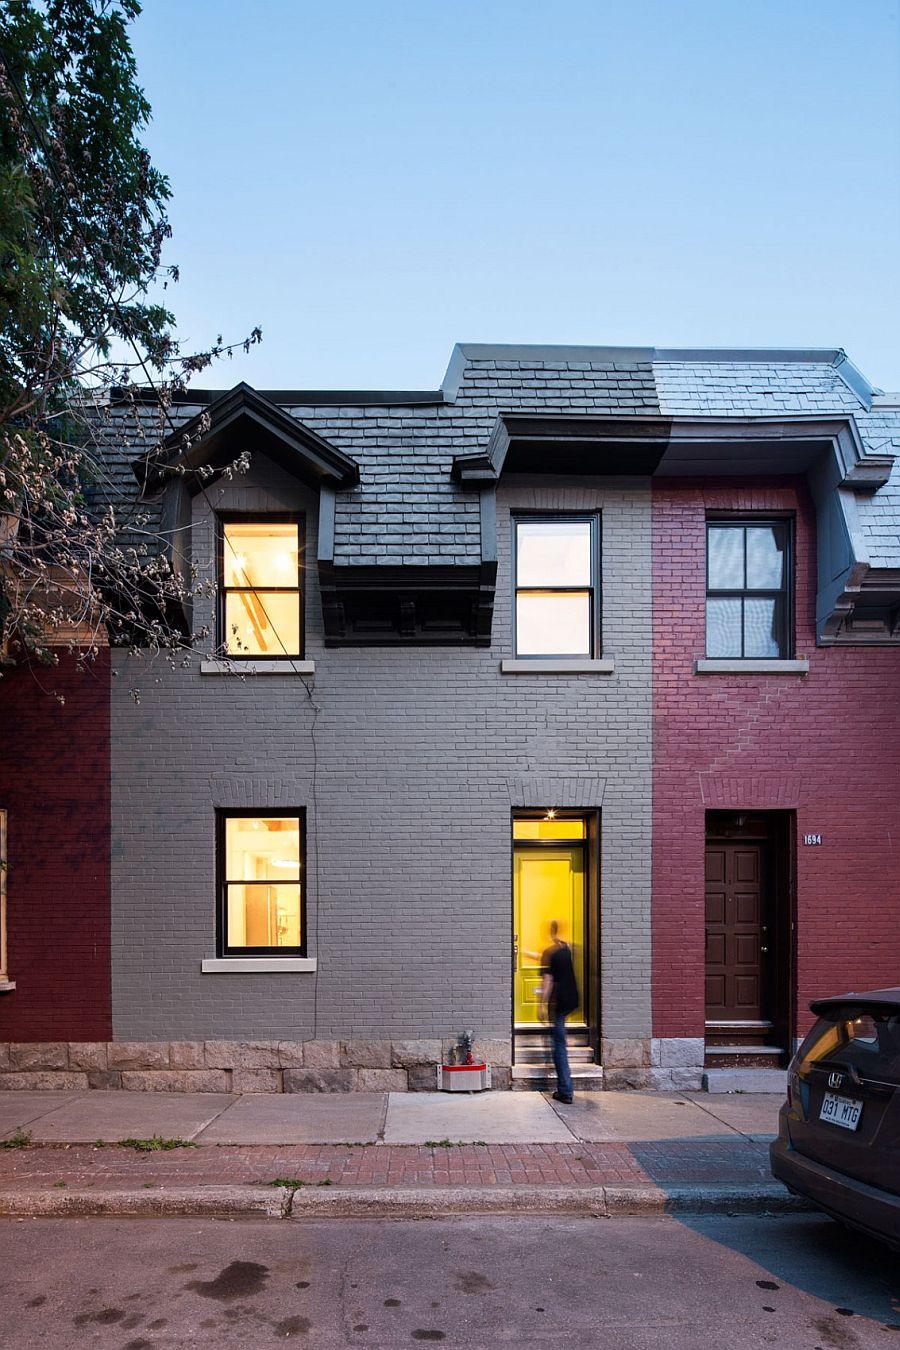 Street facade of the remodeled row house in Canada from the 1880s